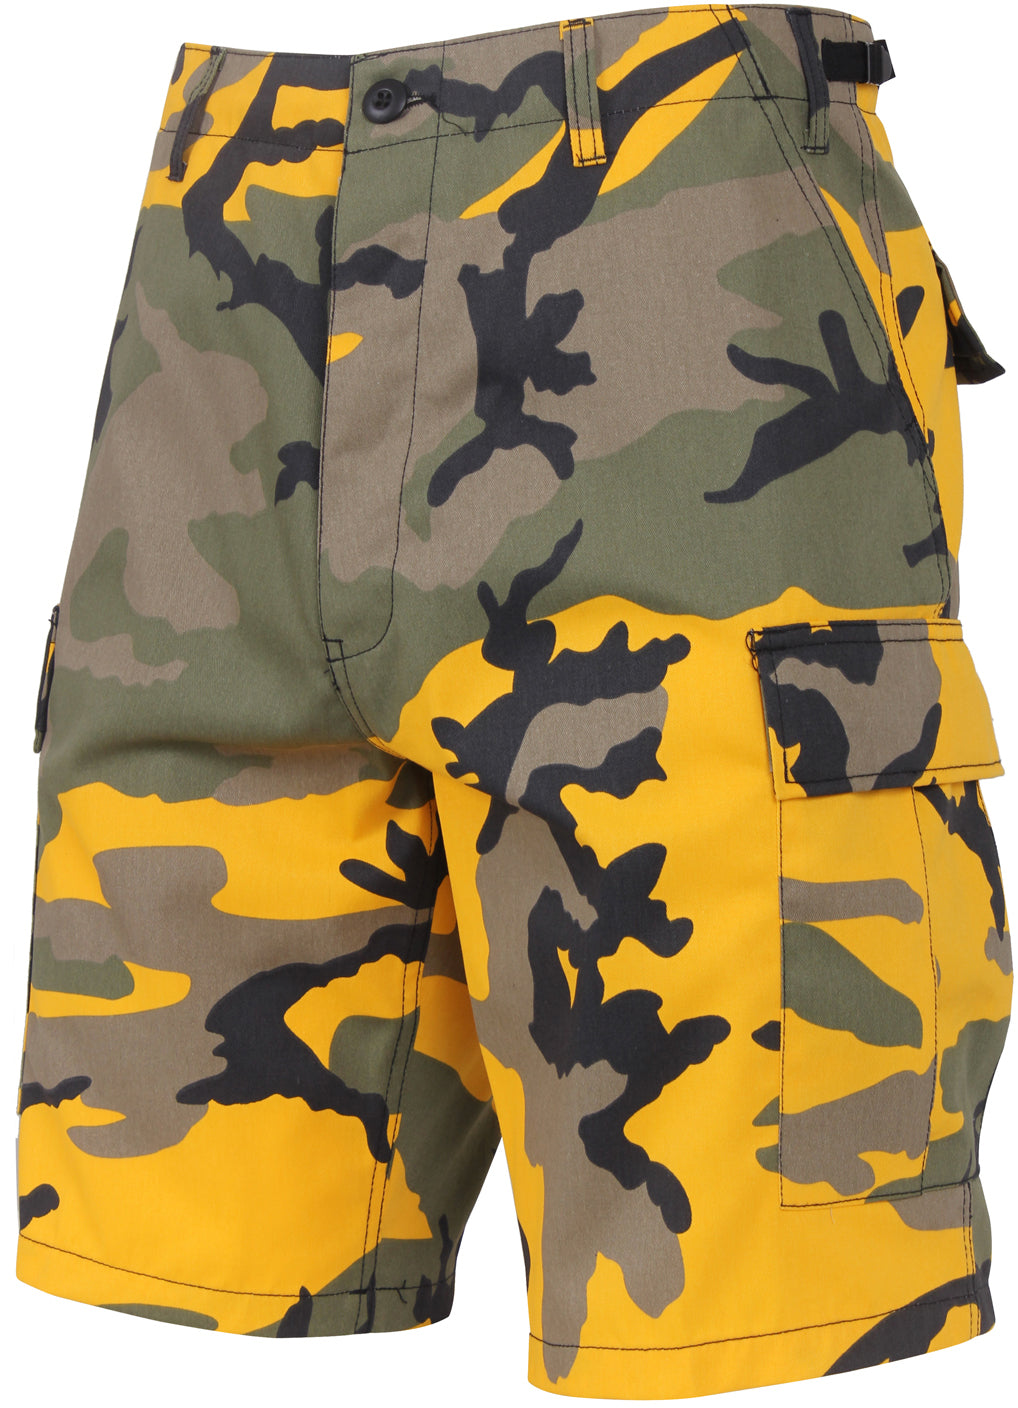 Stinger Yellow Camouflage  - Military Cargo BDU Shorts (Polyester/Cotton Twill)